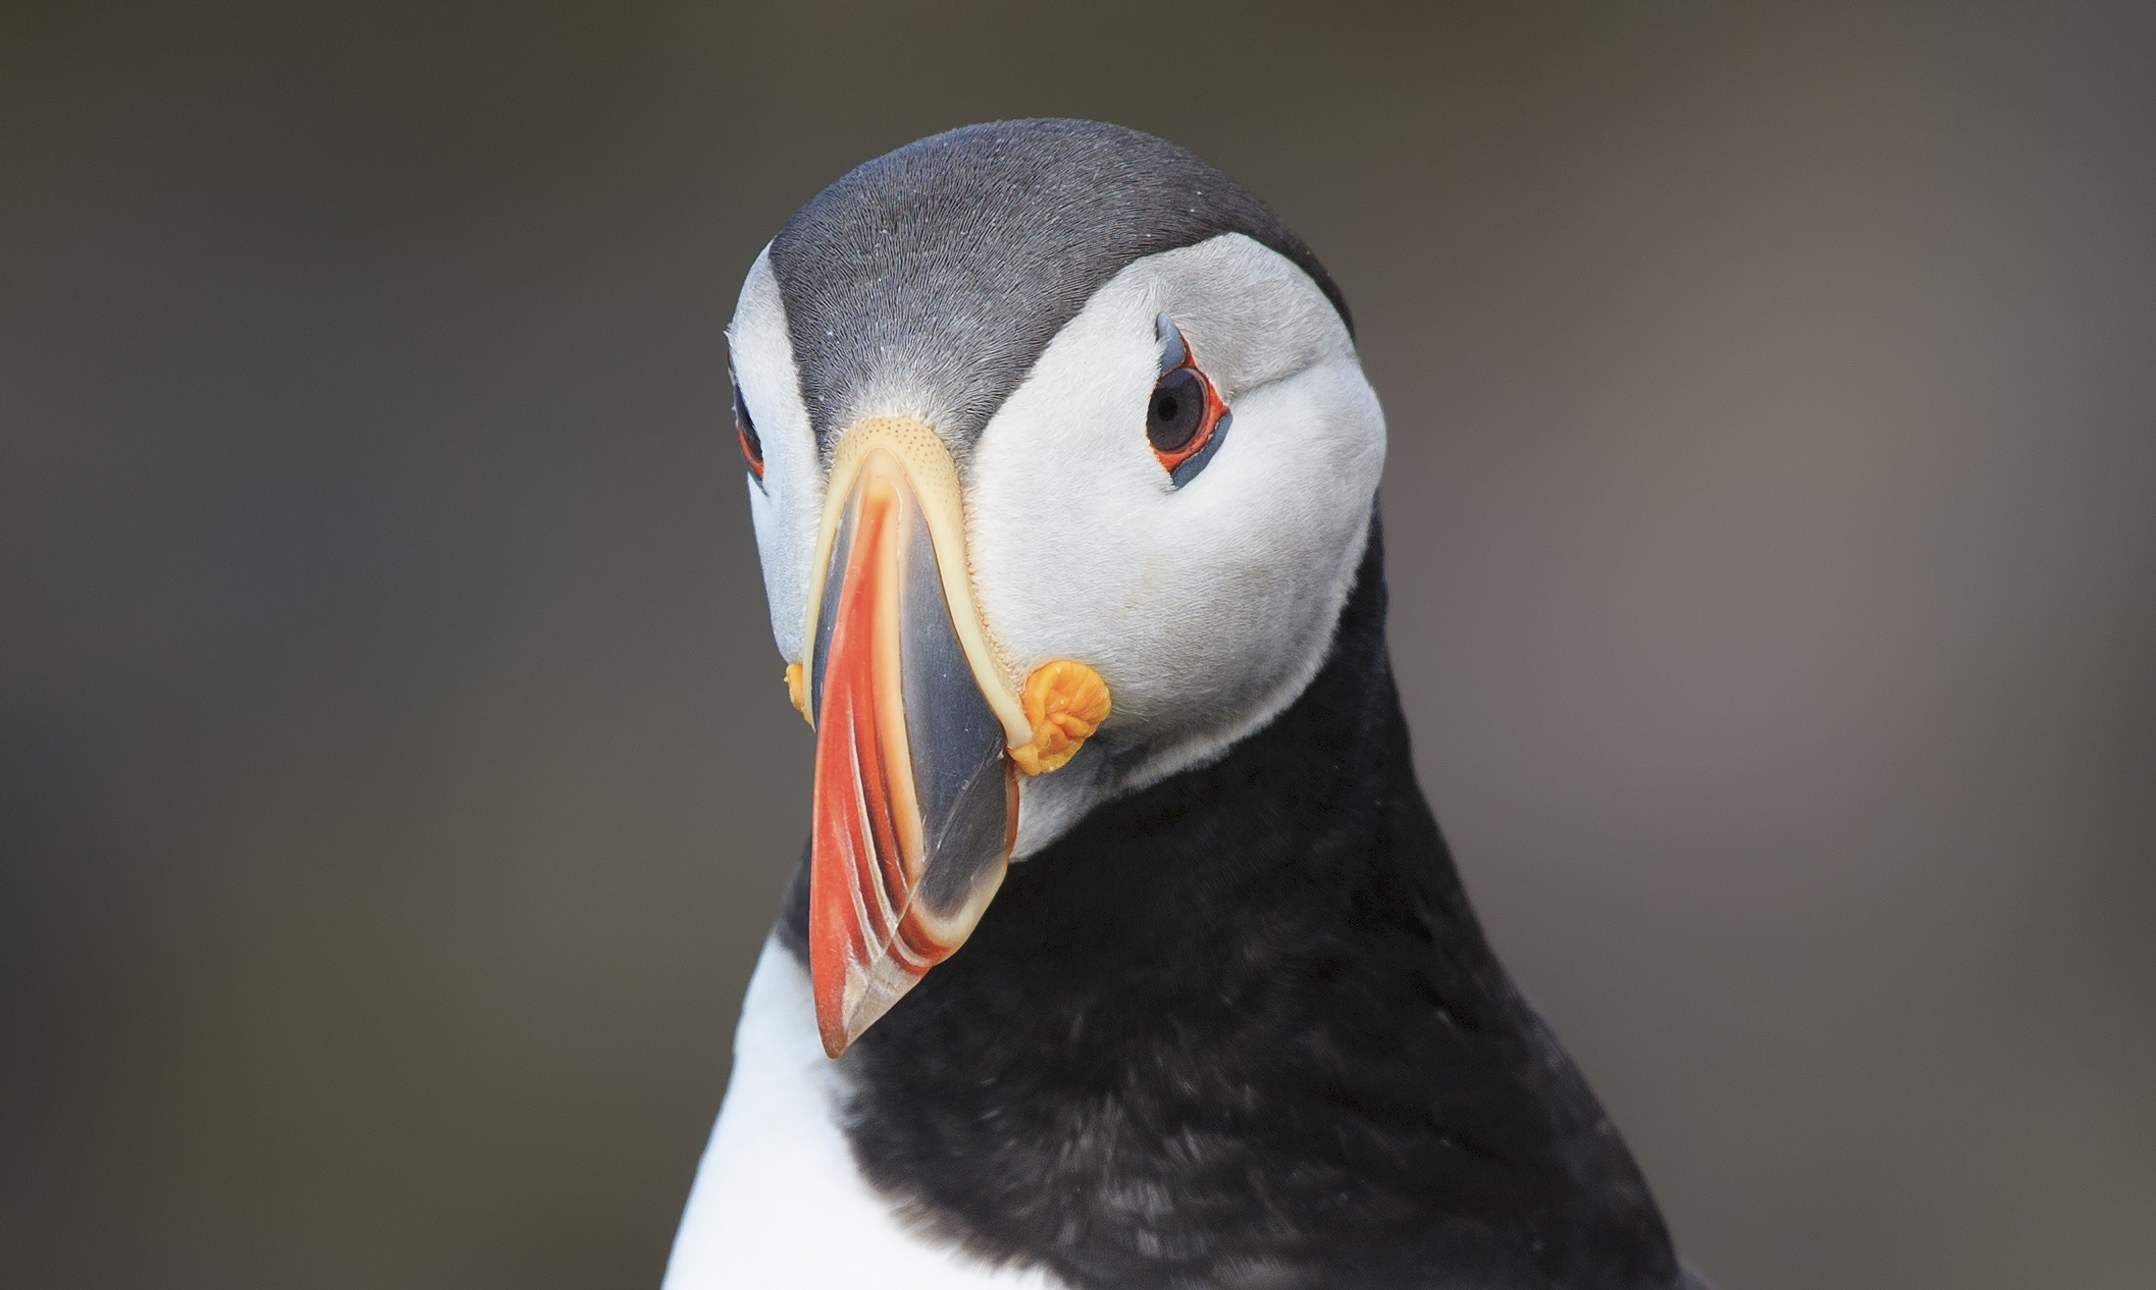 The North Atlantic Puffin with its adorable face and colourful beak comes to Iceland's shores and islands each year to find love.